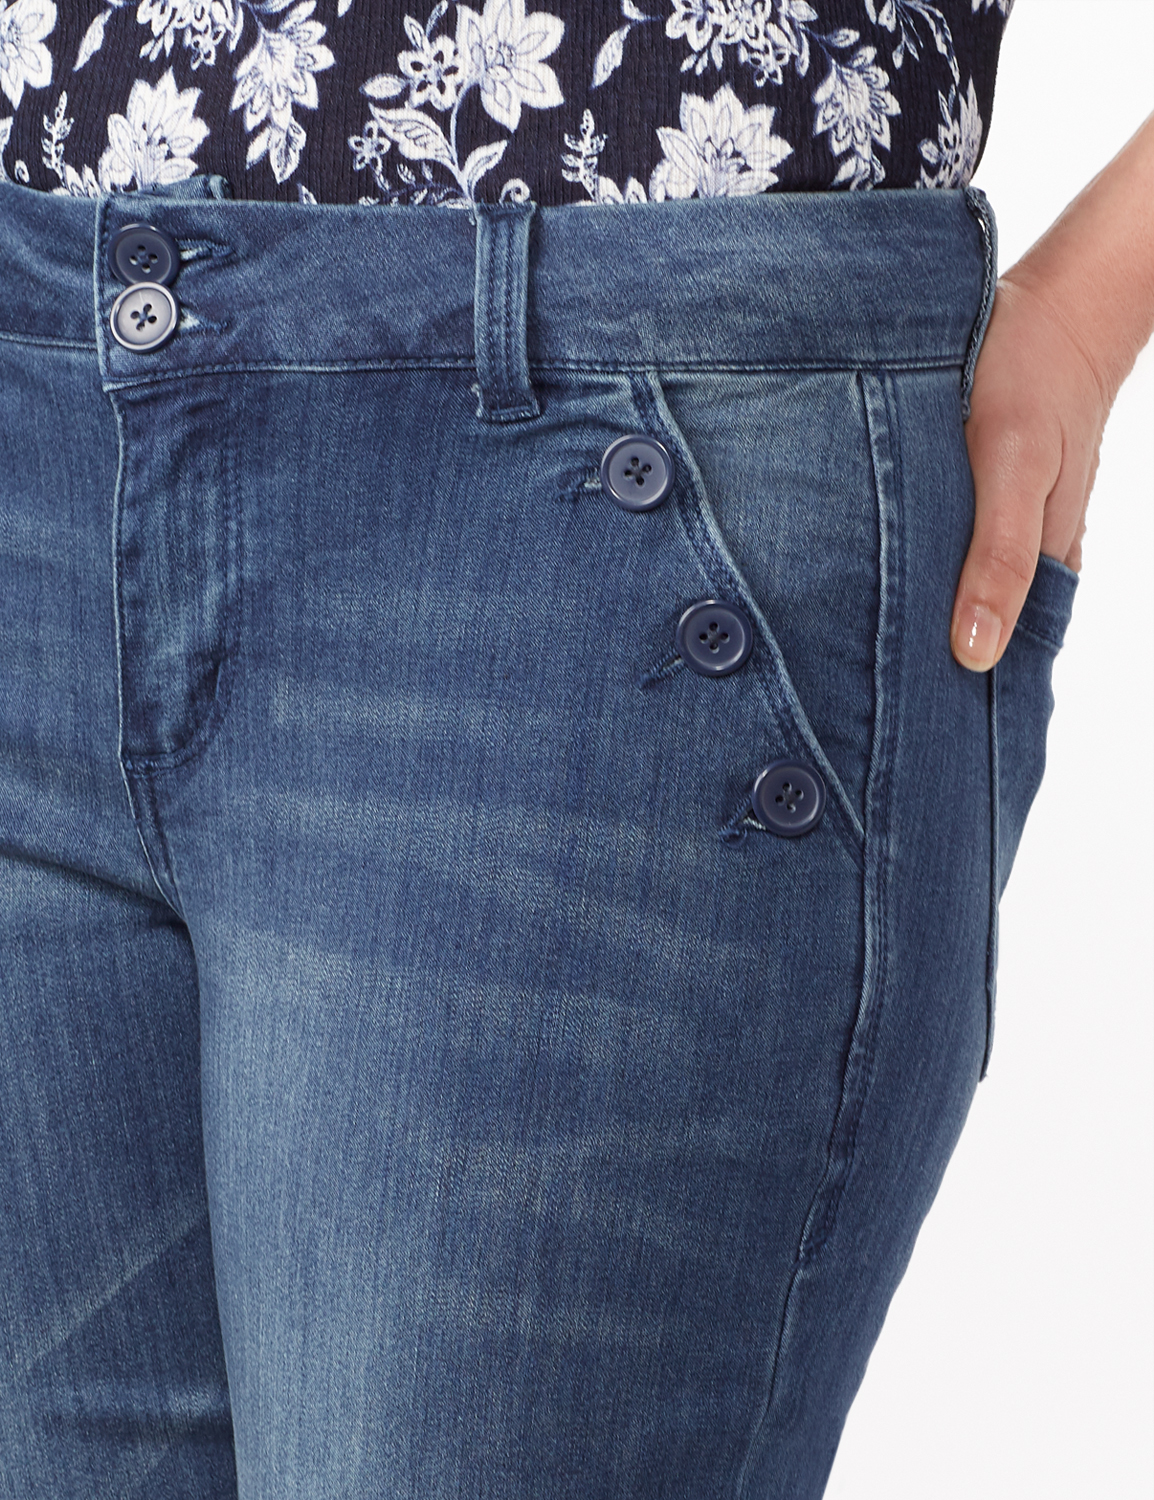 Denim Trousers with Button Pocket Detail - Medium Stone Wash - Detail